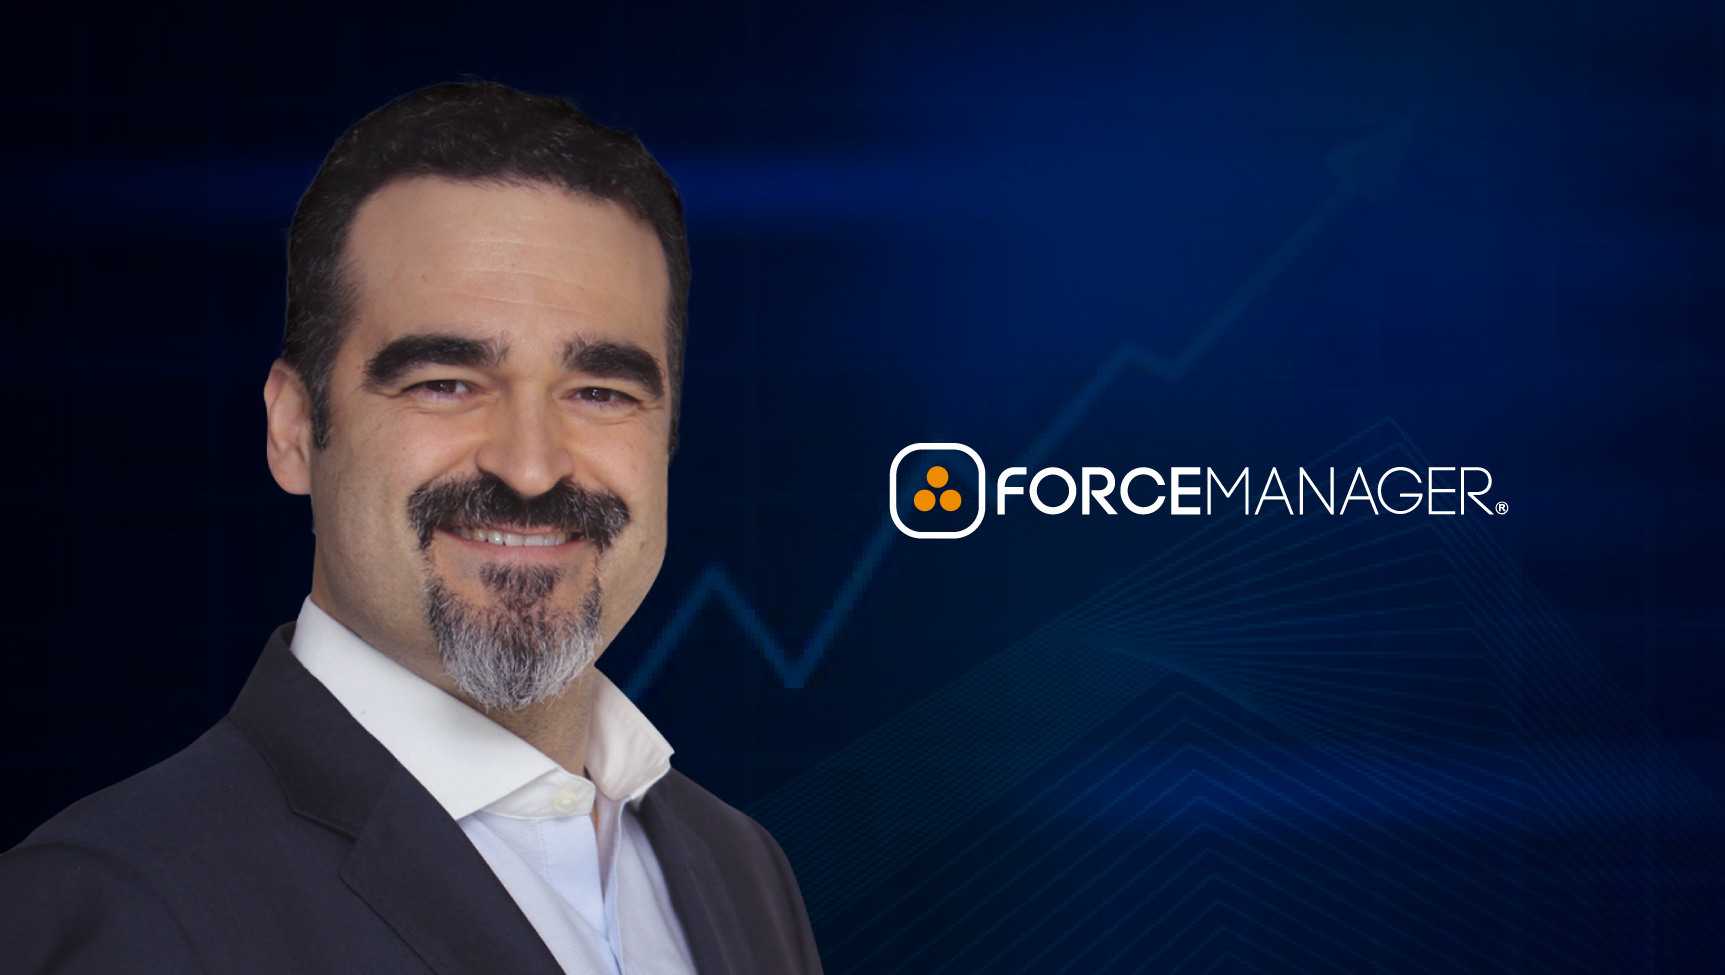 SalesTech Interview with Xavi Bisbal, COO and CoFounder at ForceManager